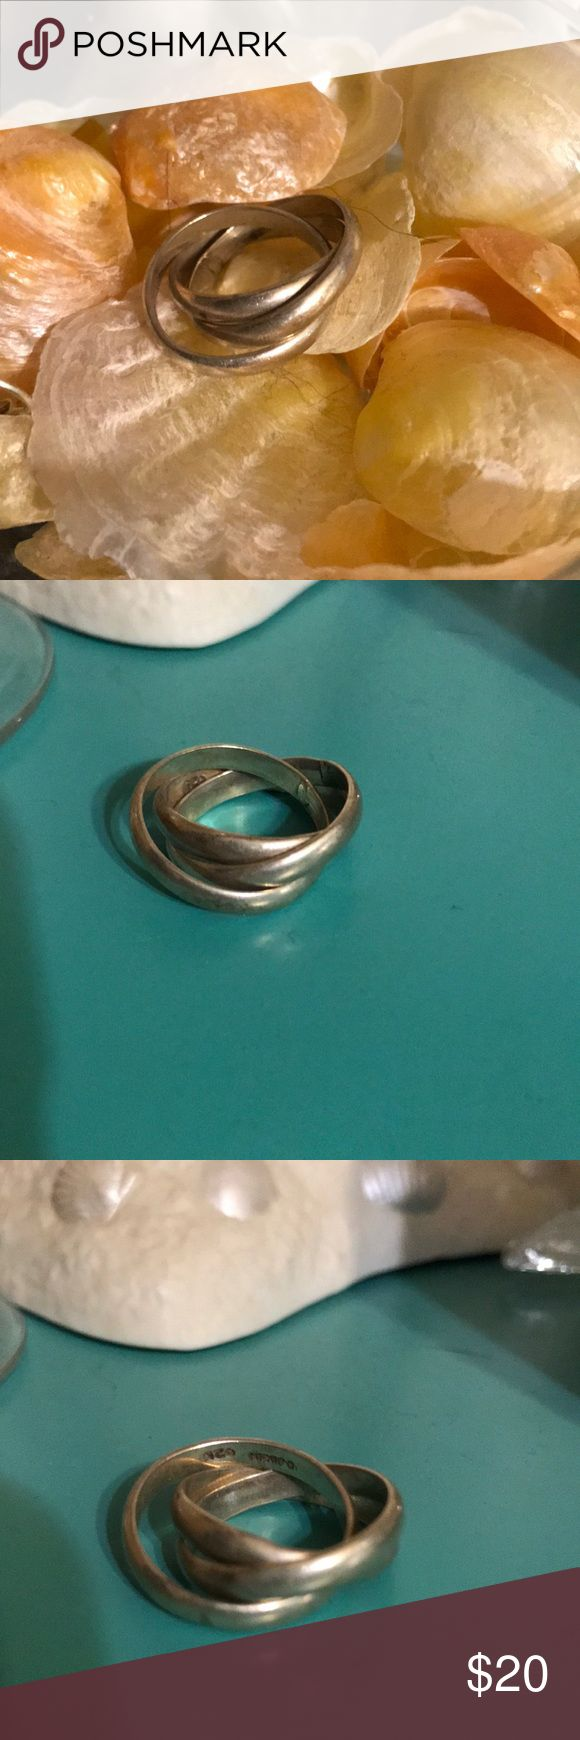 """Stirling silver triple band rolling ring Triple band rolling ring Stirling silver  Sometimes called """"Russian wedding ring"""" Jewelry Rings"""